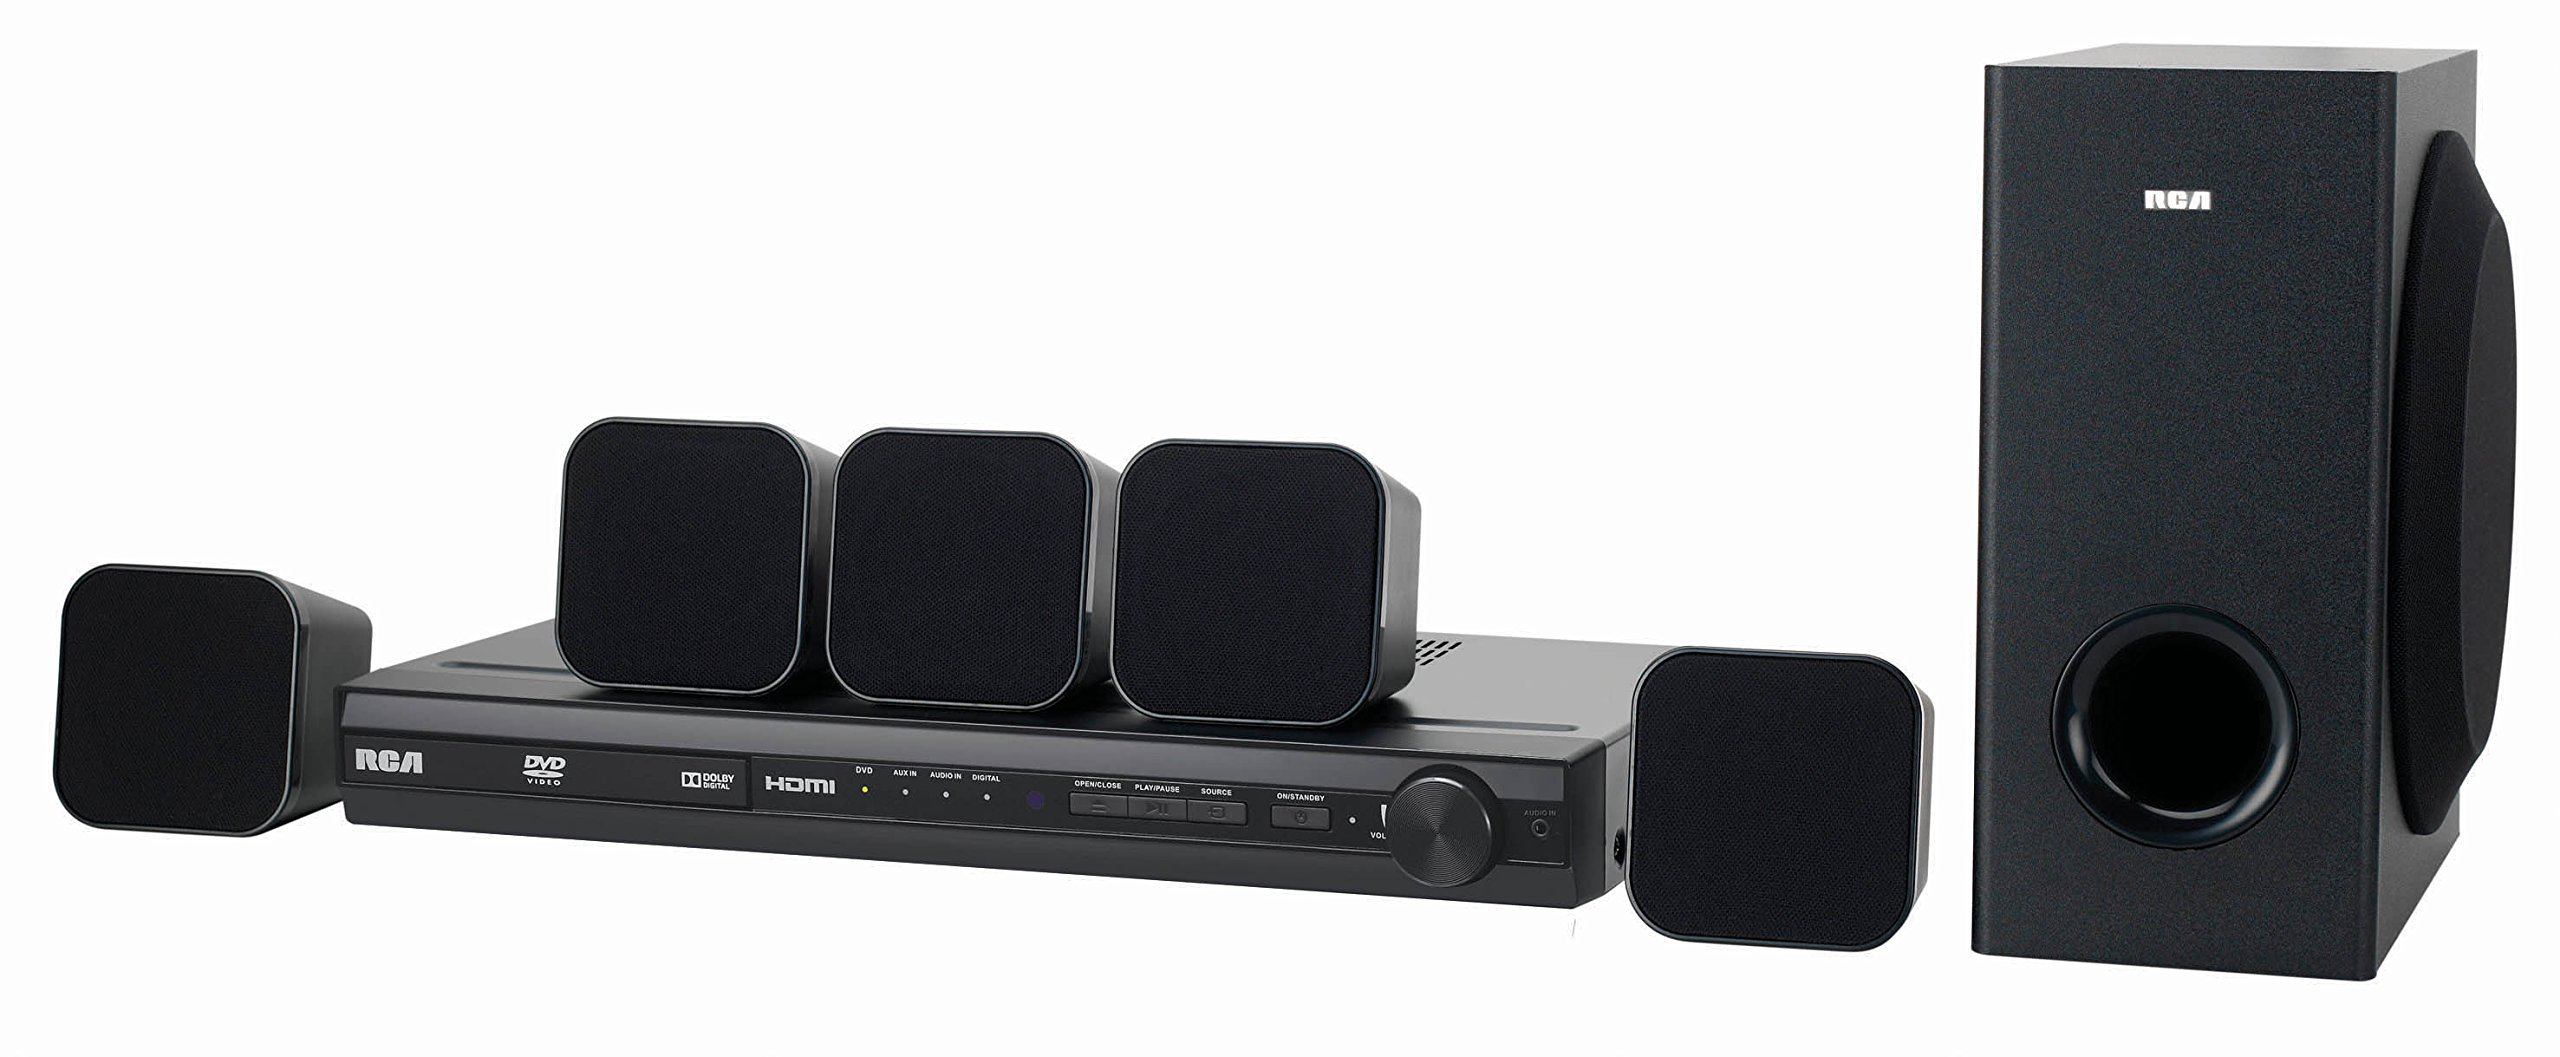 Rca Dvd Home Theater System with Hdmi 1080p Rtd3276h by RCA